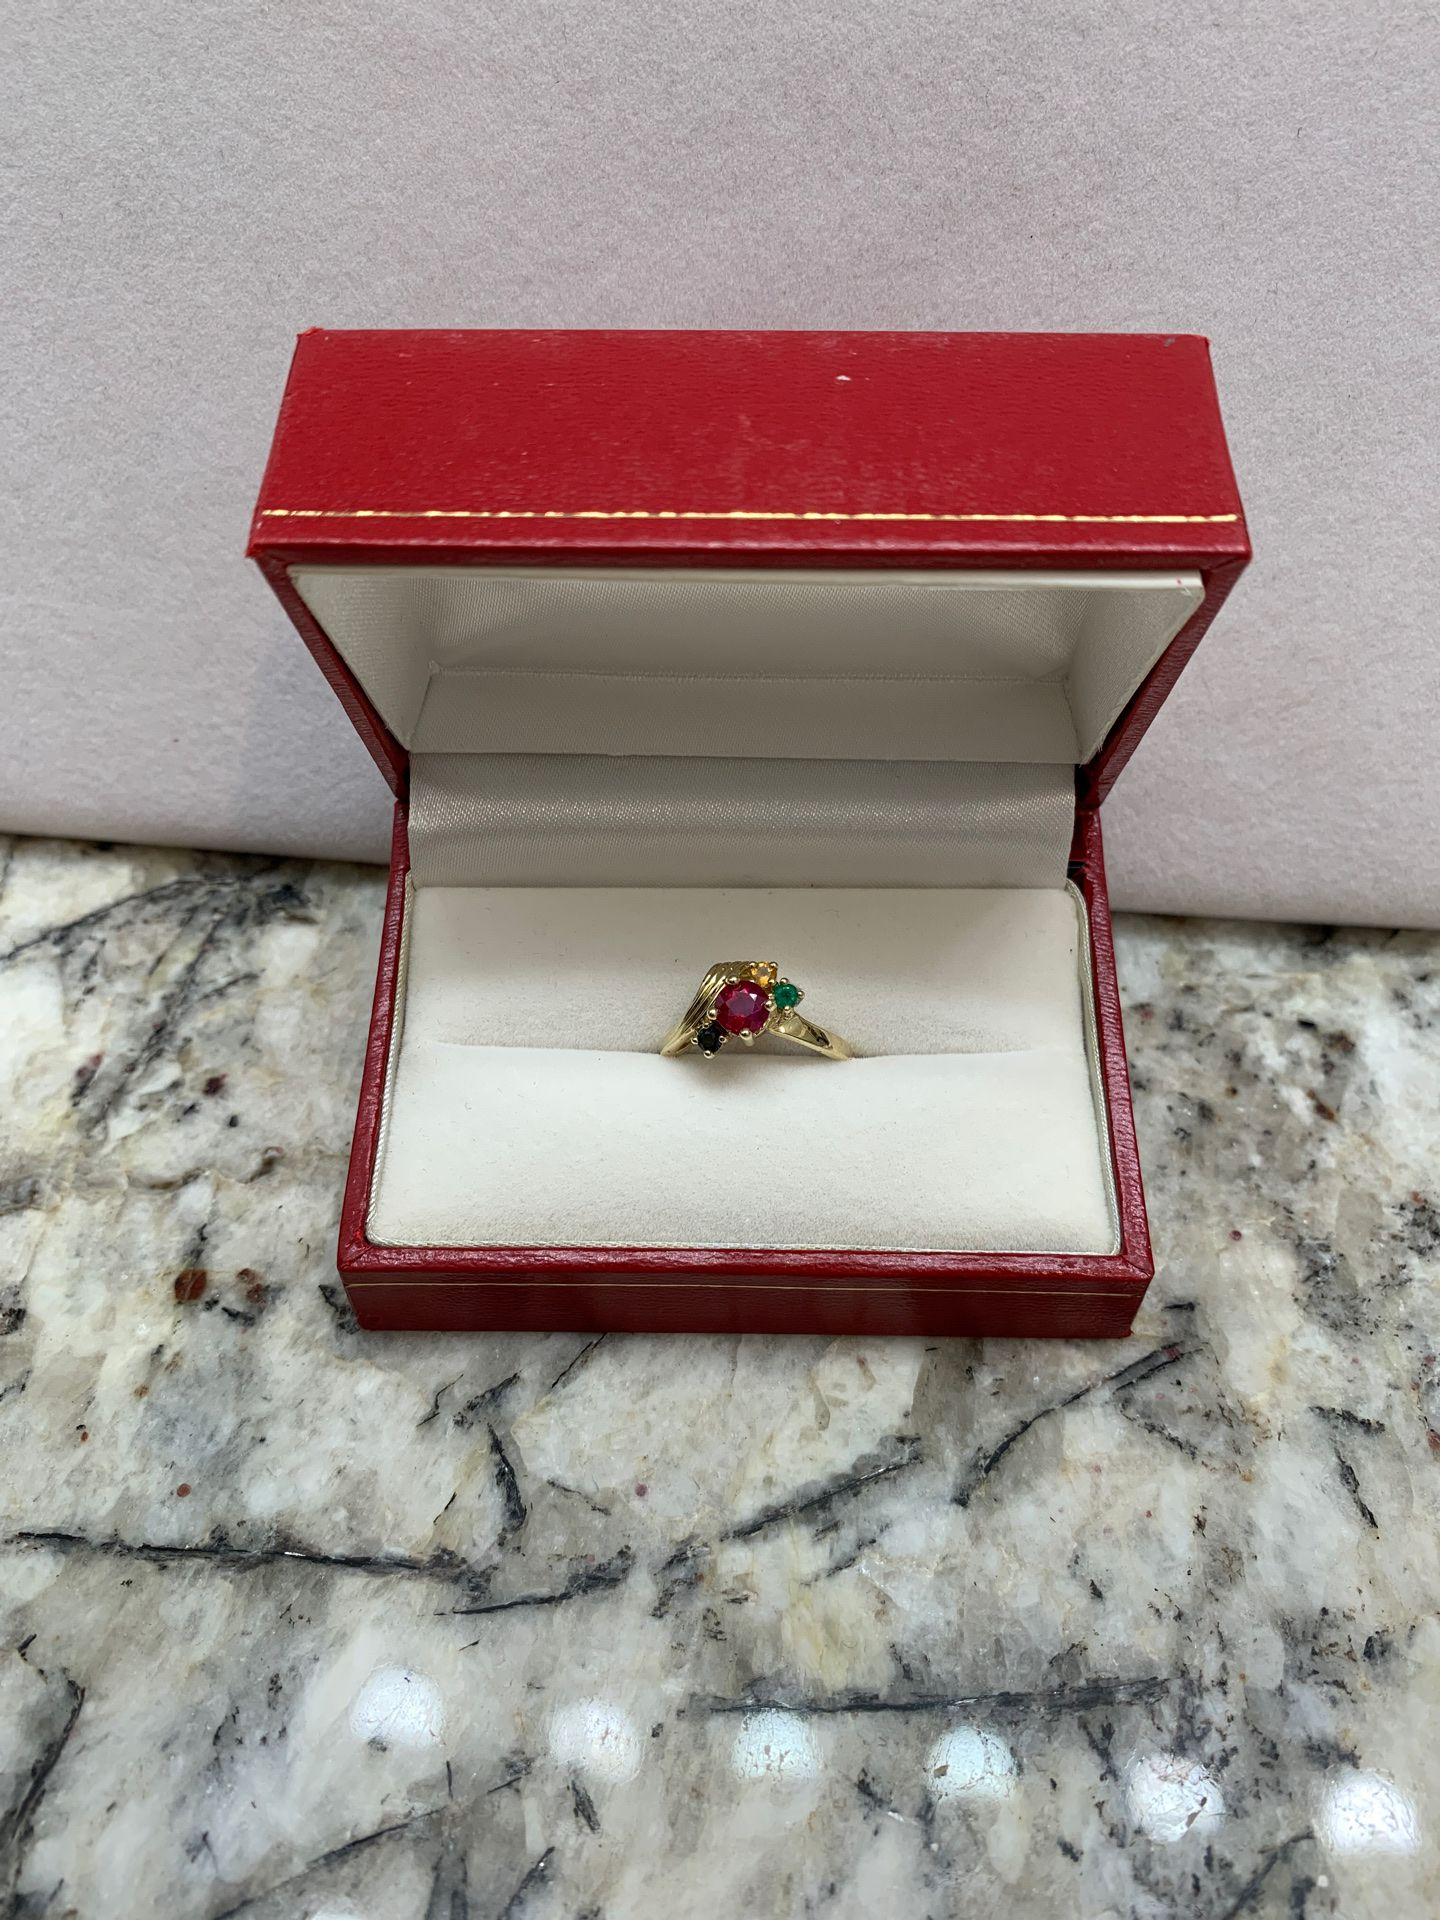 14K GOLD RING WITH RUBY, SAPPHIRE AND EMERALD